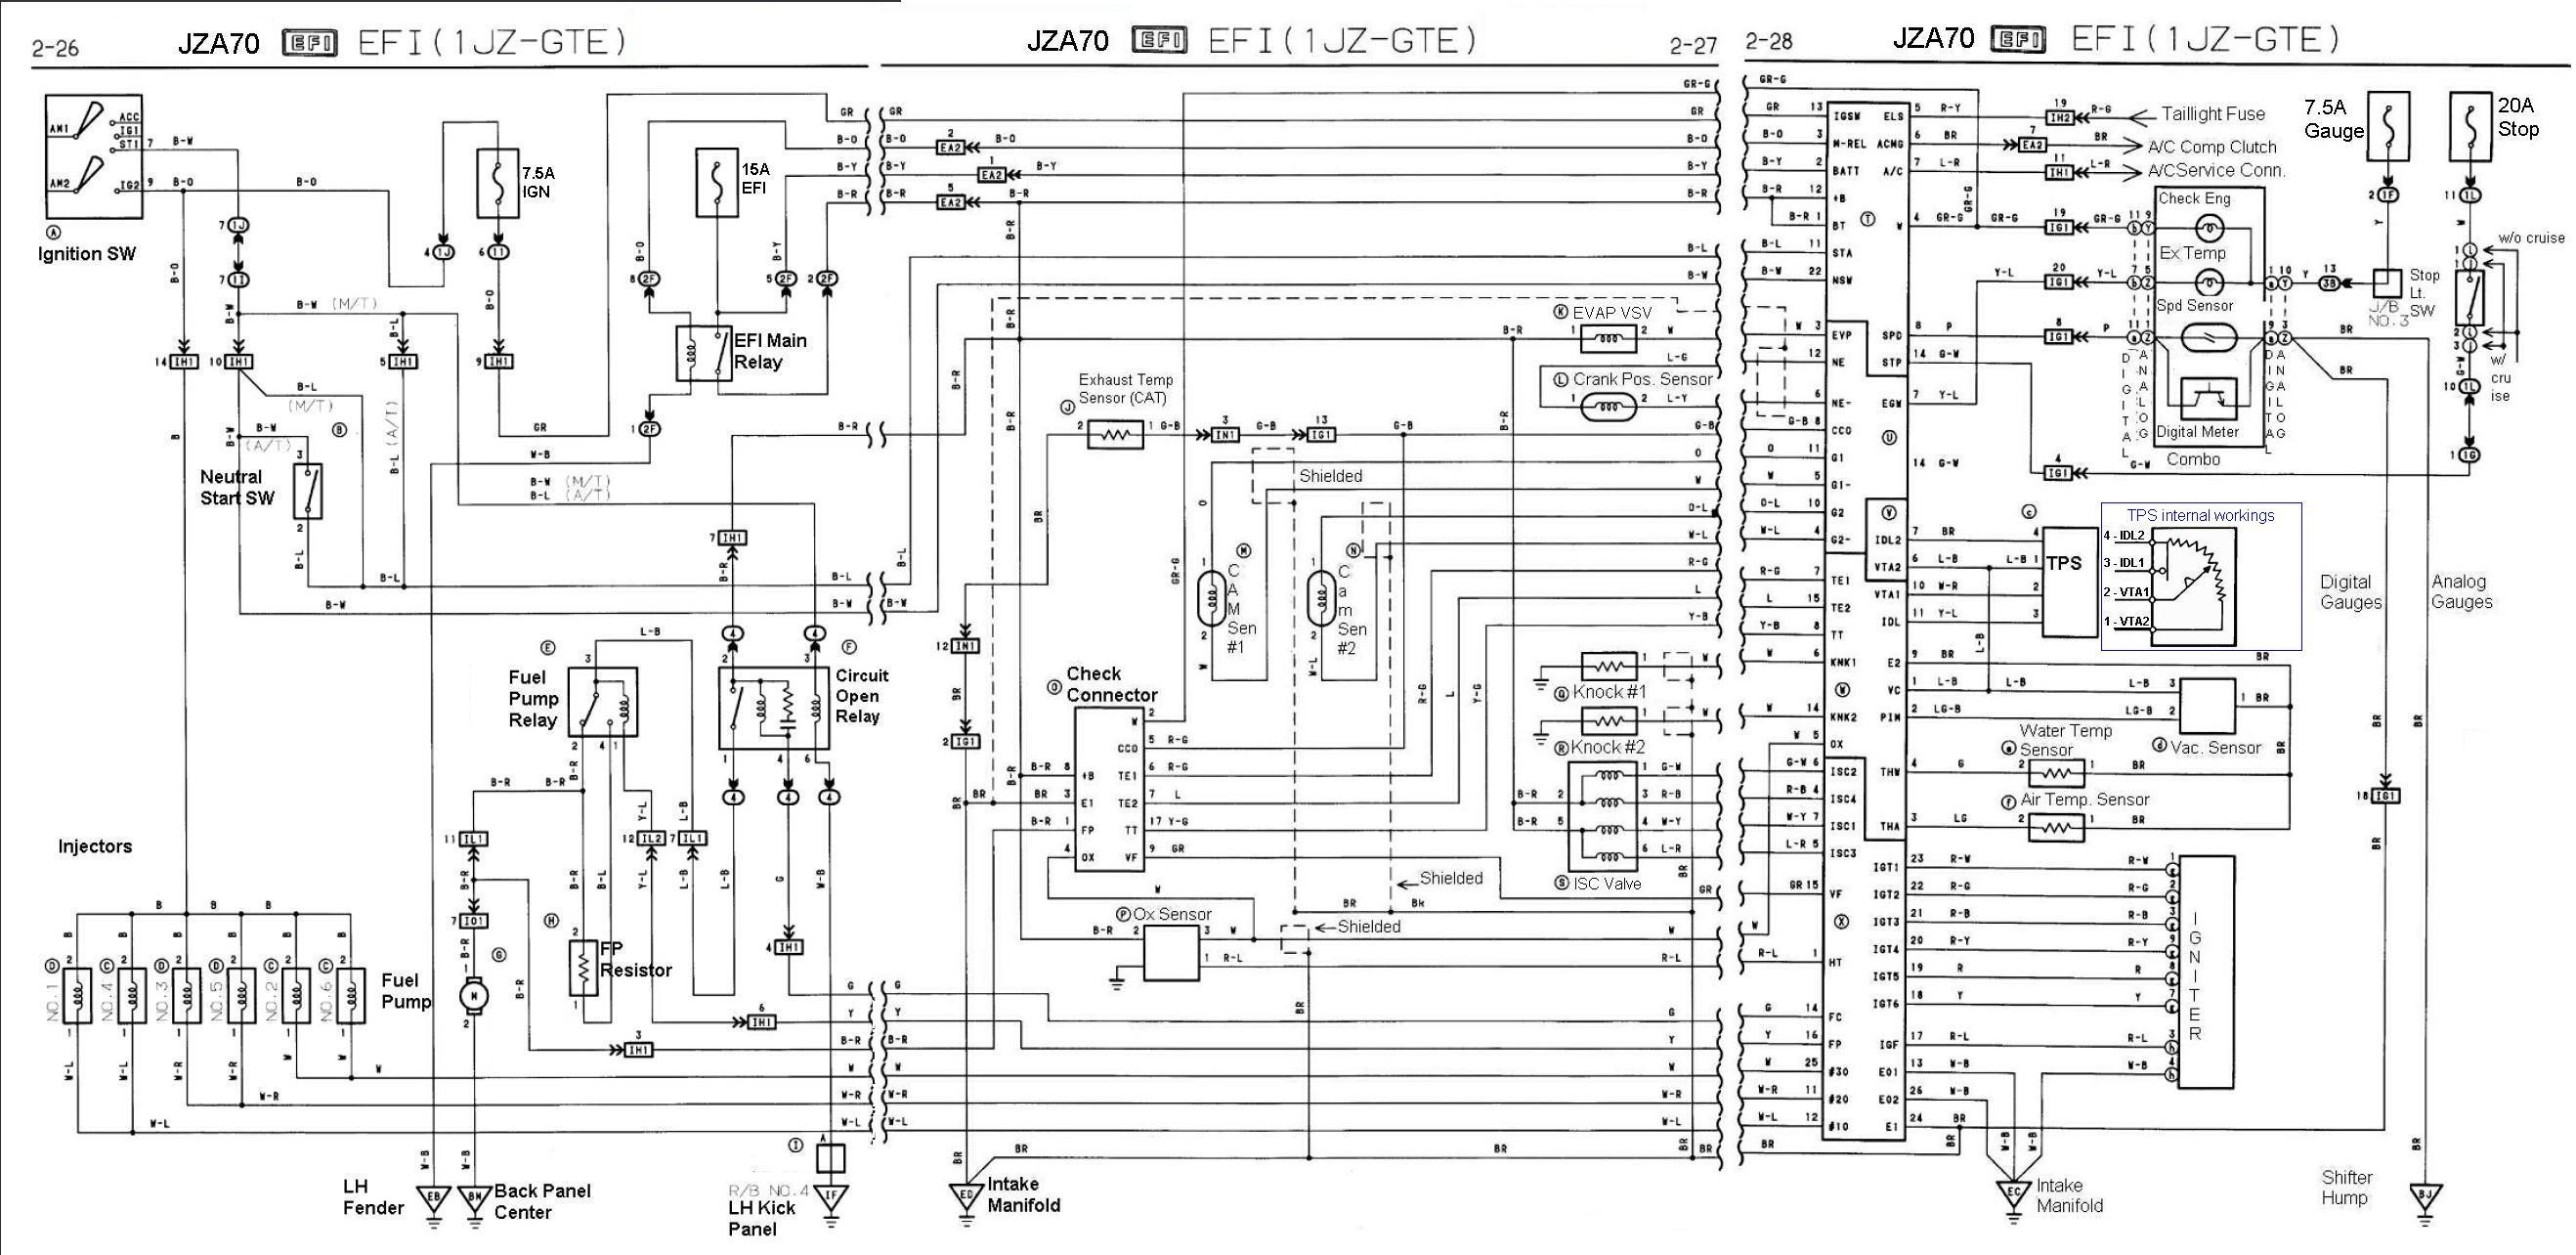 e90 335i engine diagram zx7 wiring